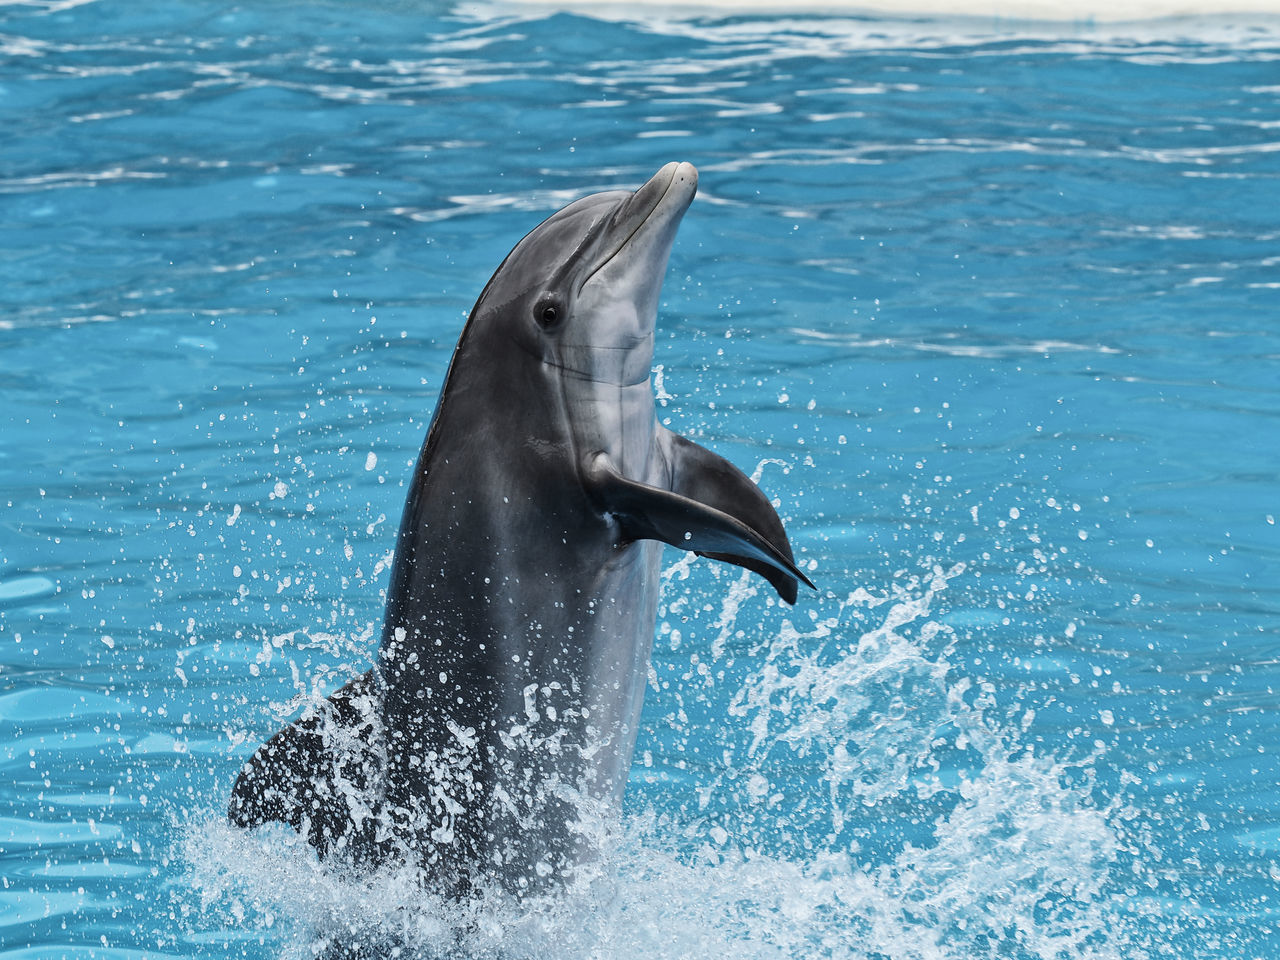 Animal Themes Animal Wildlife Animals In The Wild Aquatic Mammal Beauty In Nature Day Dolphin Loro Parque Mammal Nature No People Outdoors Sea Sea Life Swimming Teneriffa Water Waterfront Whale